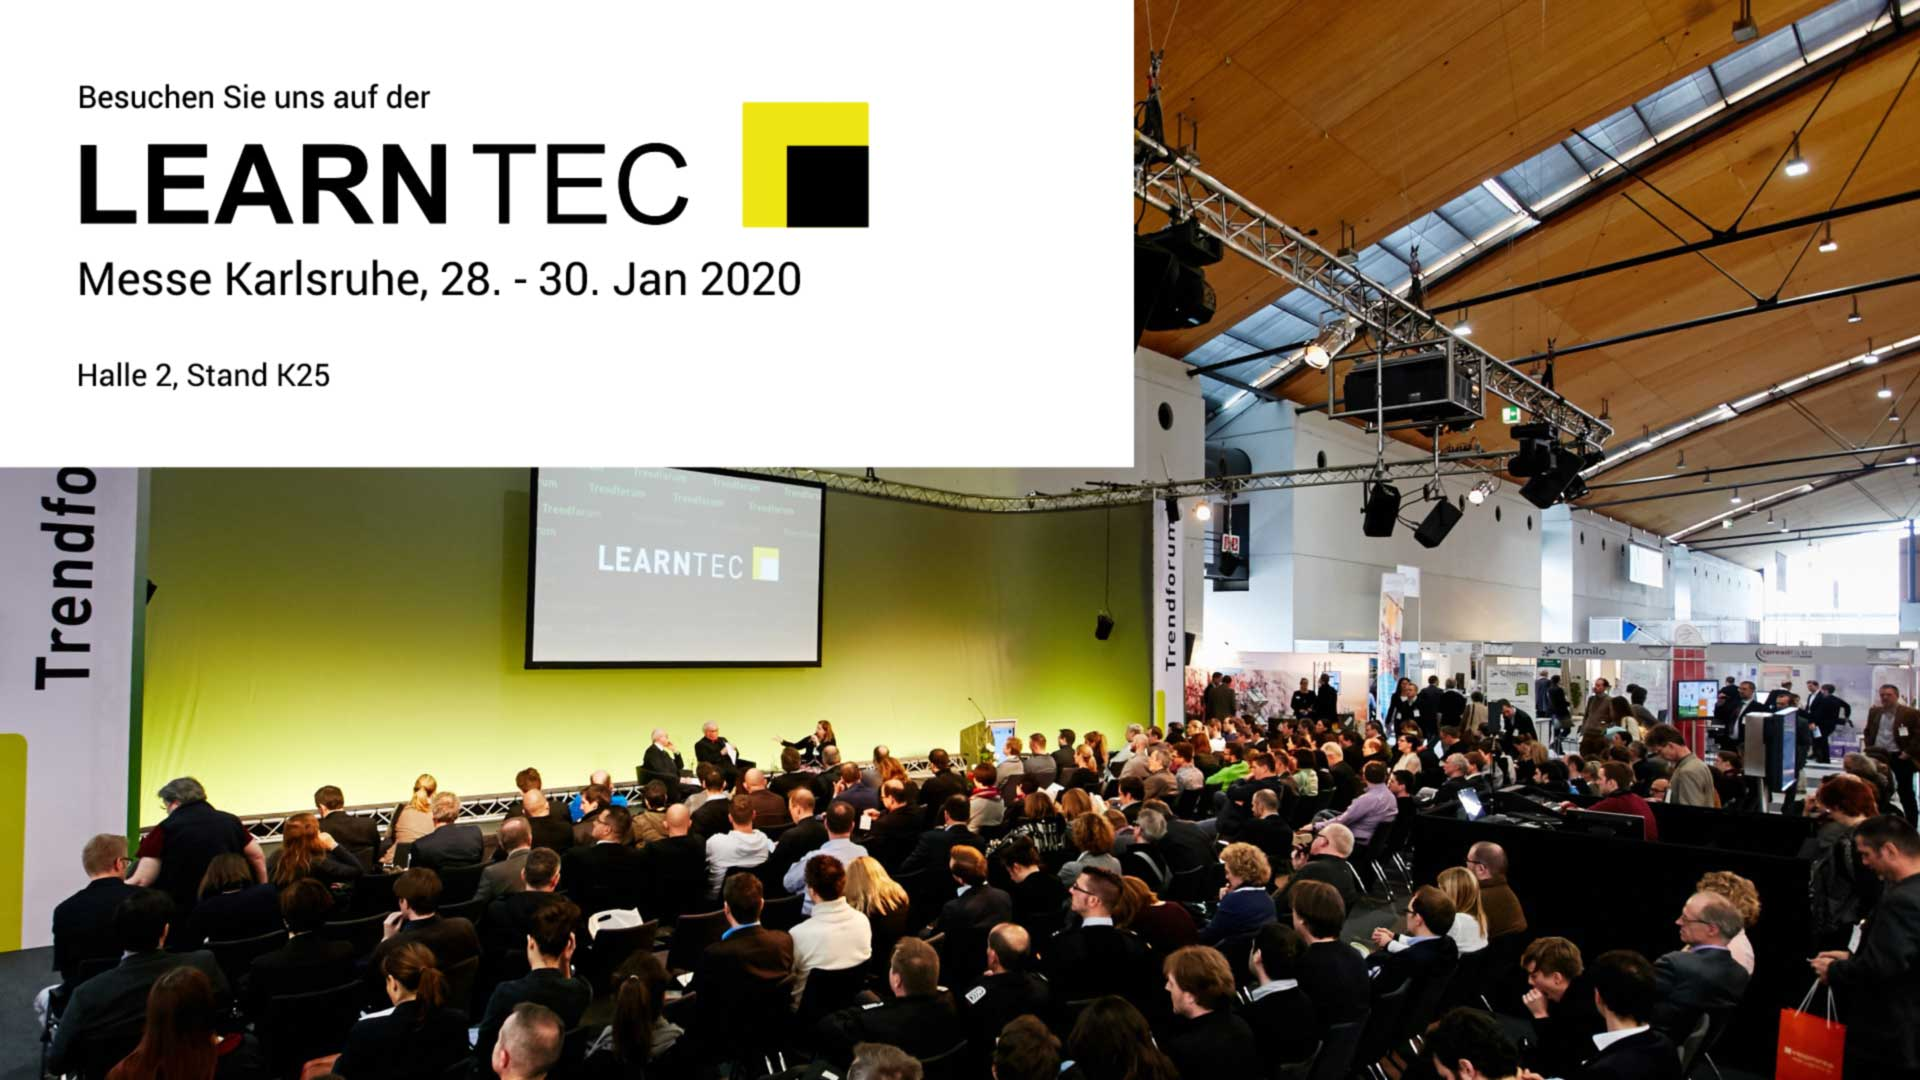 Learntec 2020 - Halle 2, Stand K25